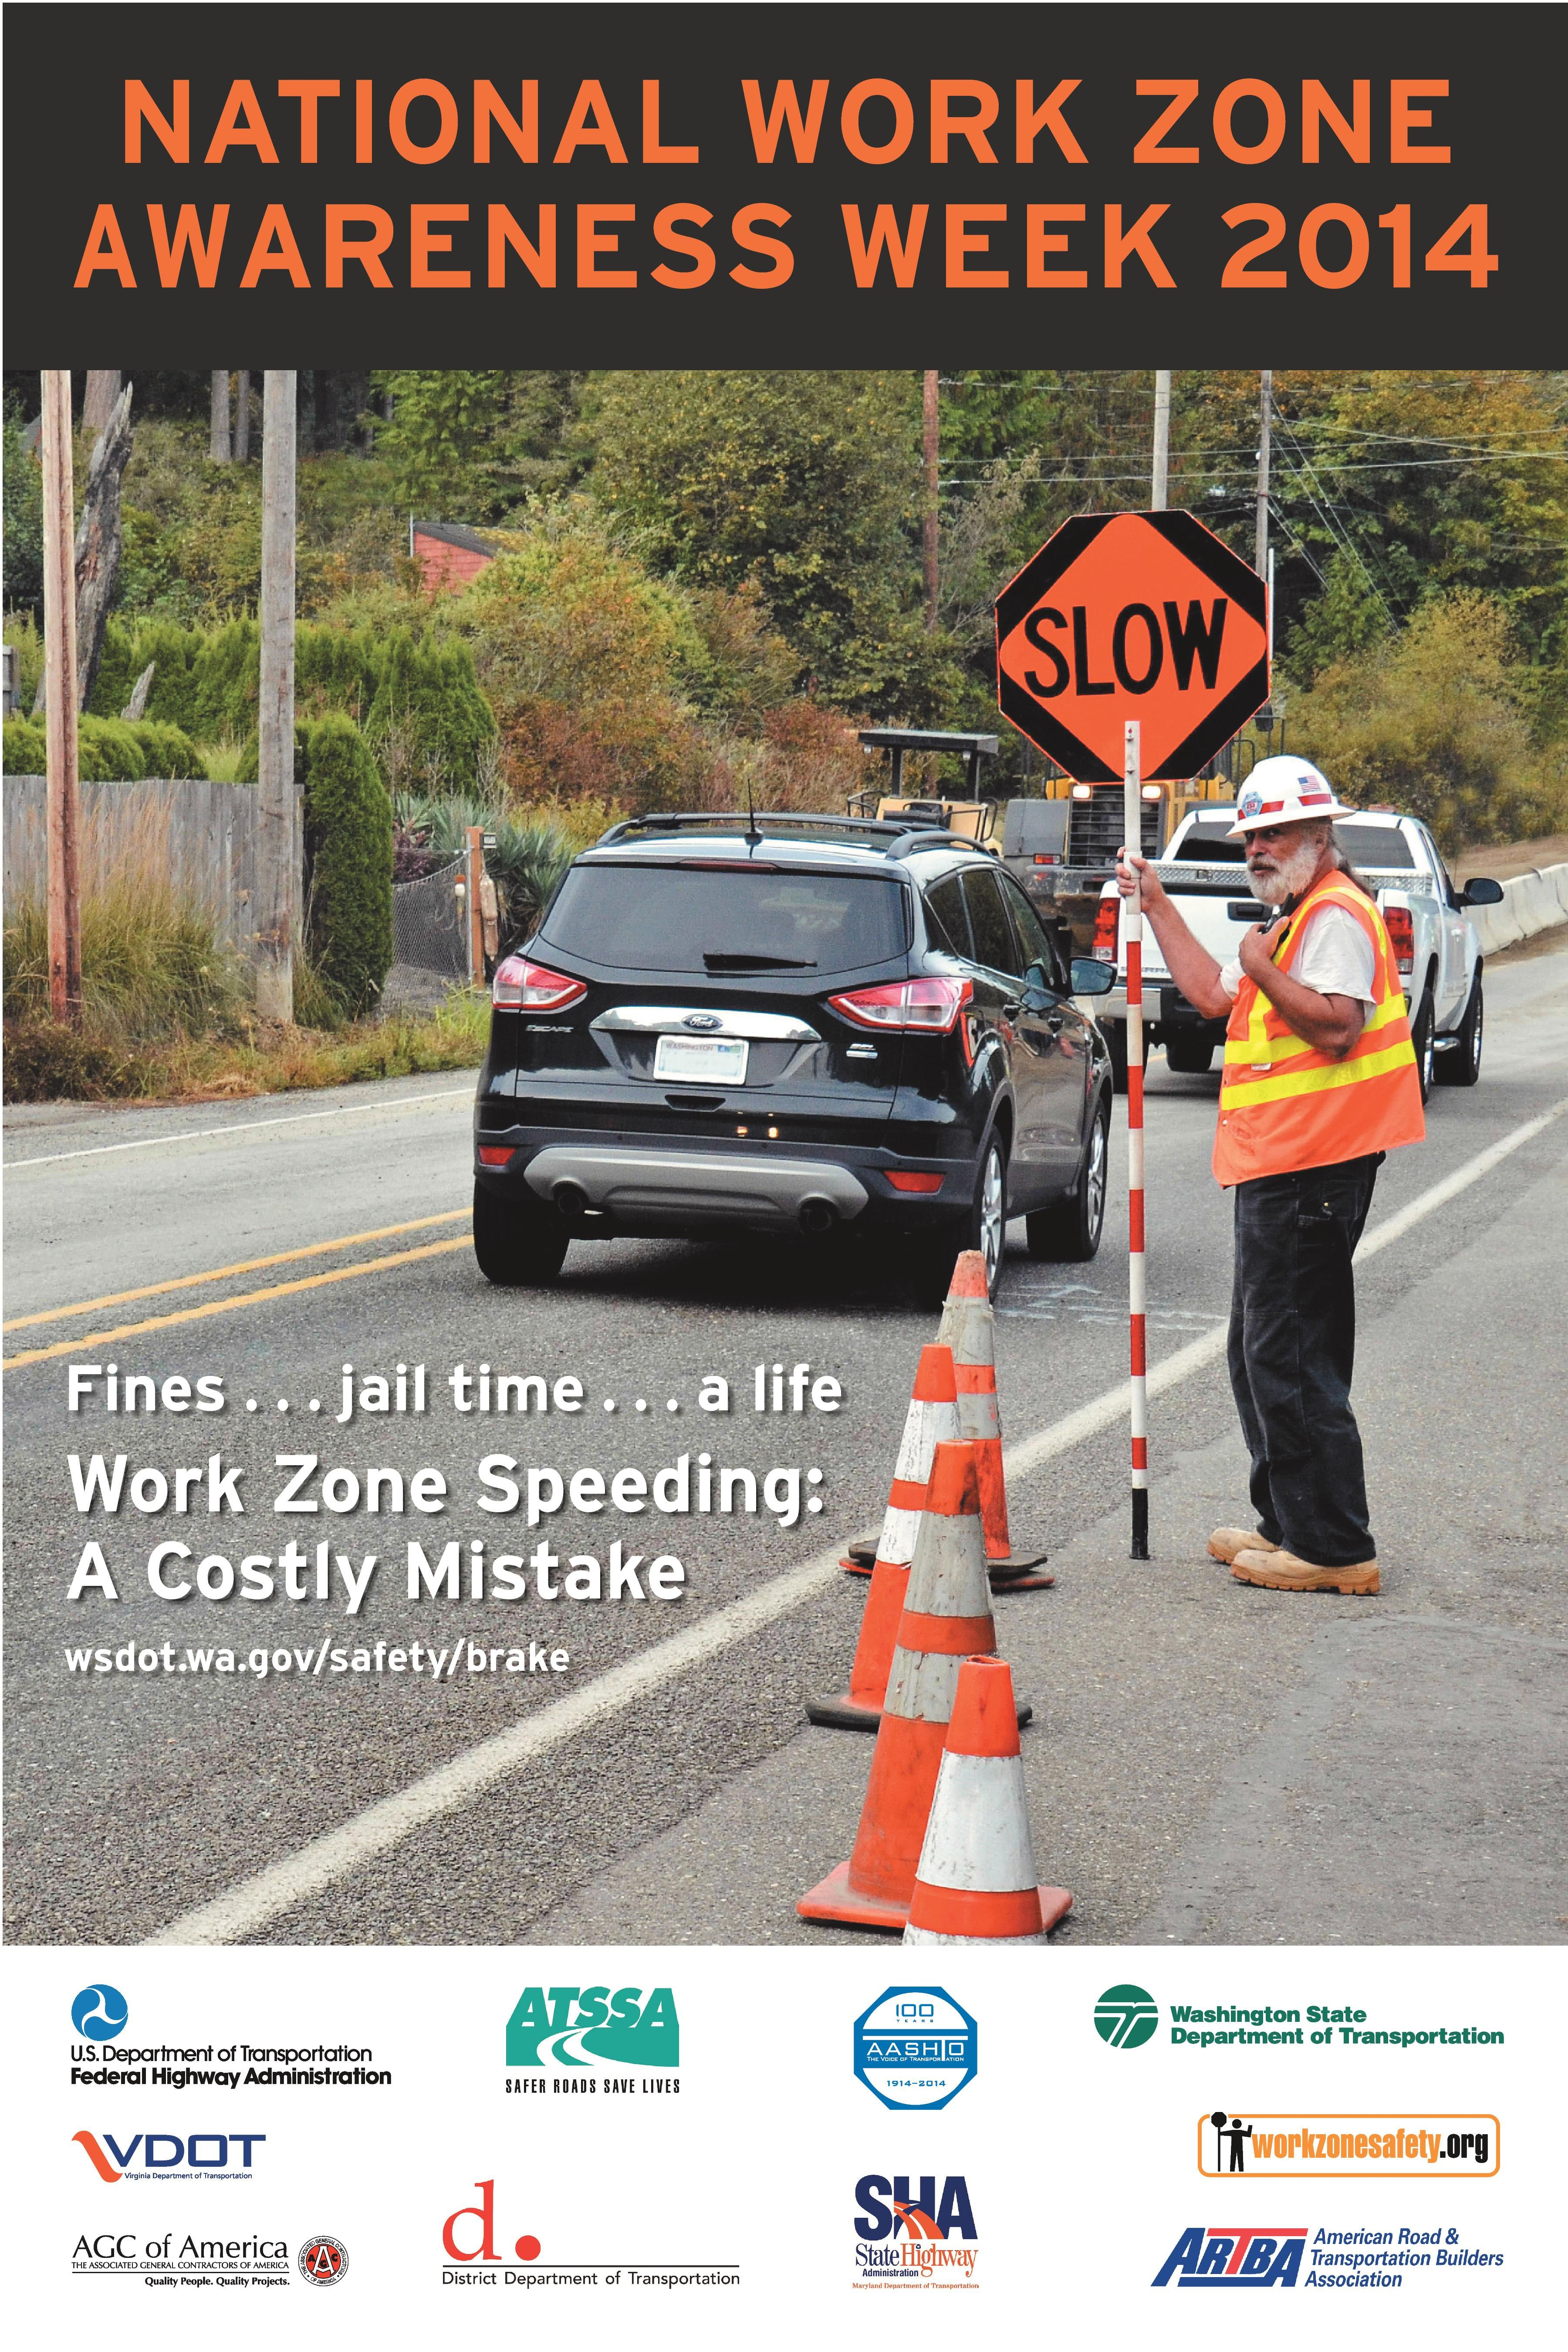 April 711th is National Work Zone Awareness Week